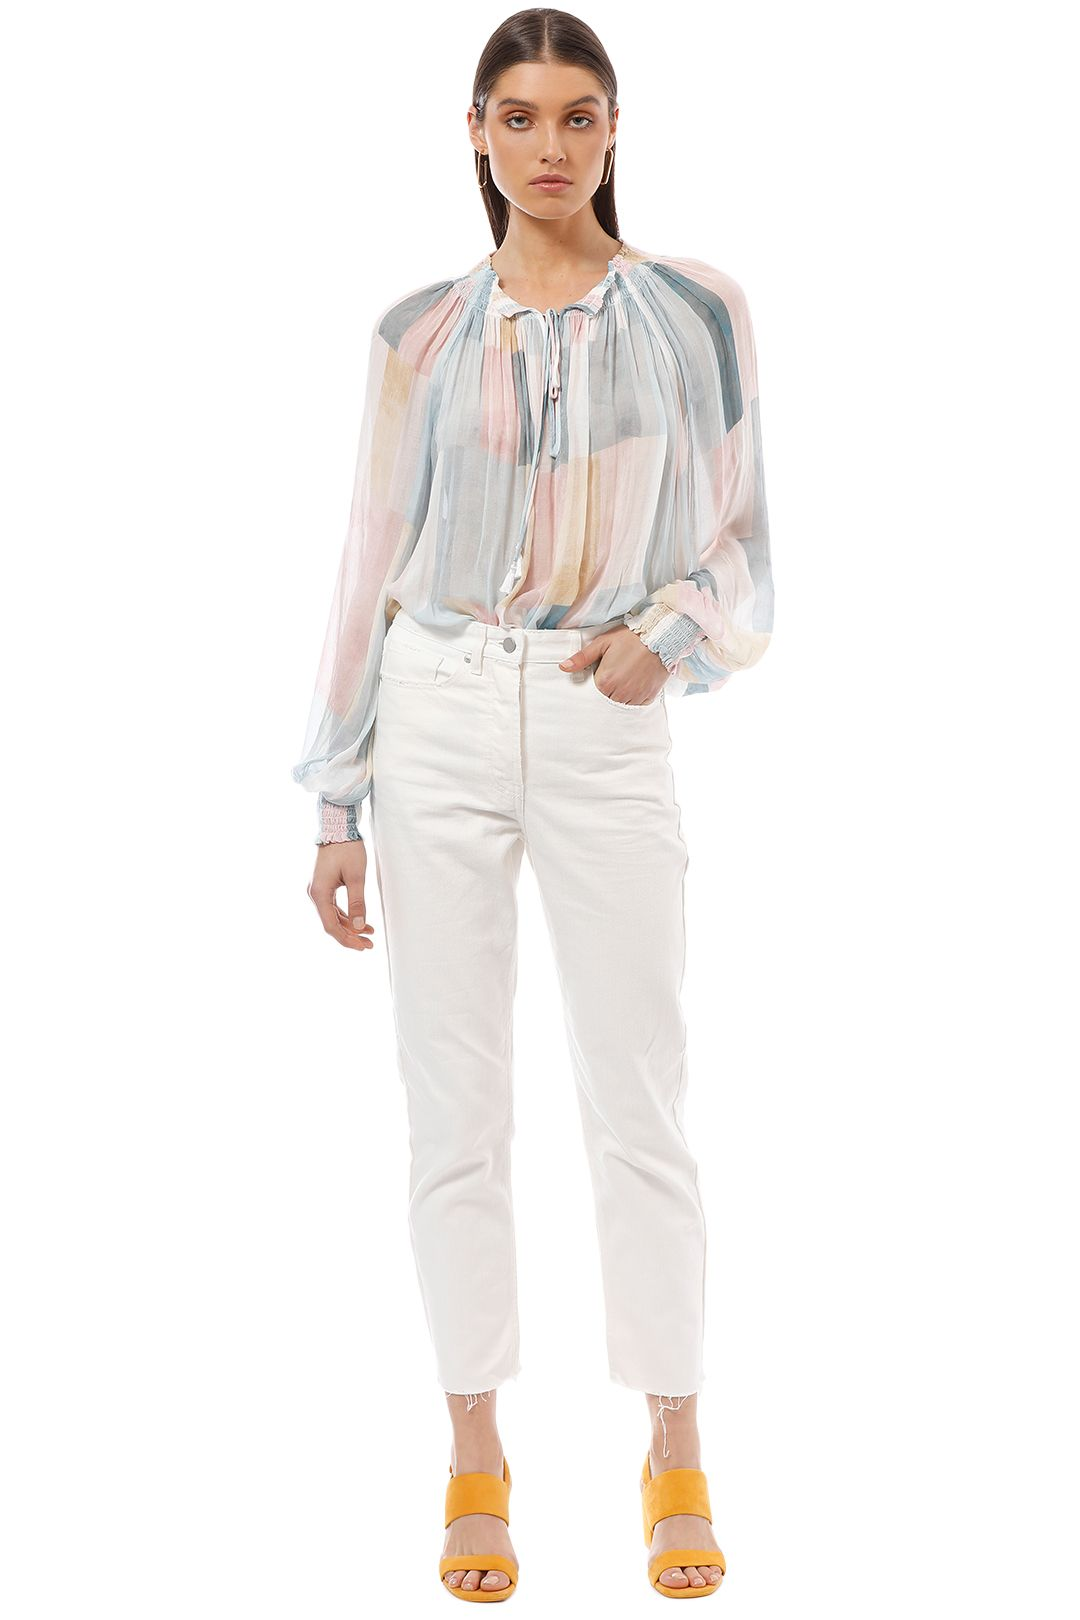 Ginger and Smart - Rapture Blouse - Watercolour Print - Front